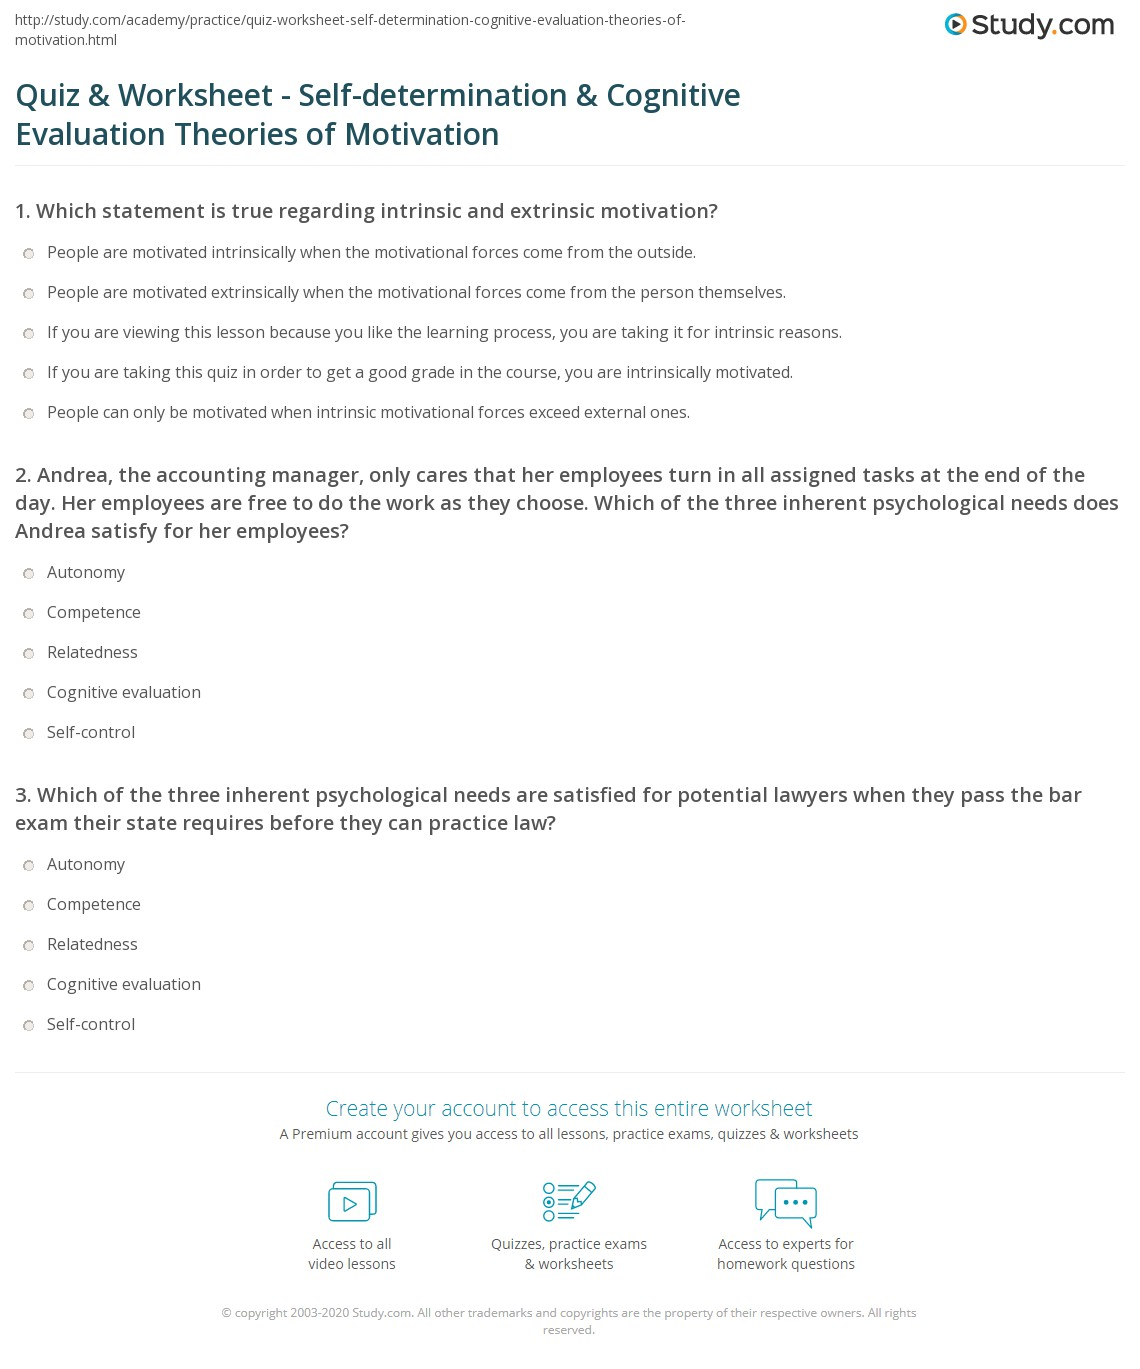 Quiz & Worksheet - Self-determination & Cognitive Evaluation Theories ...